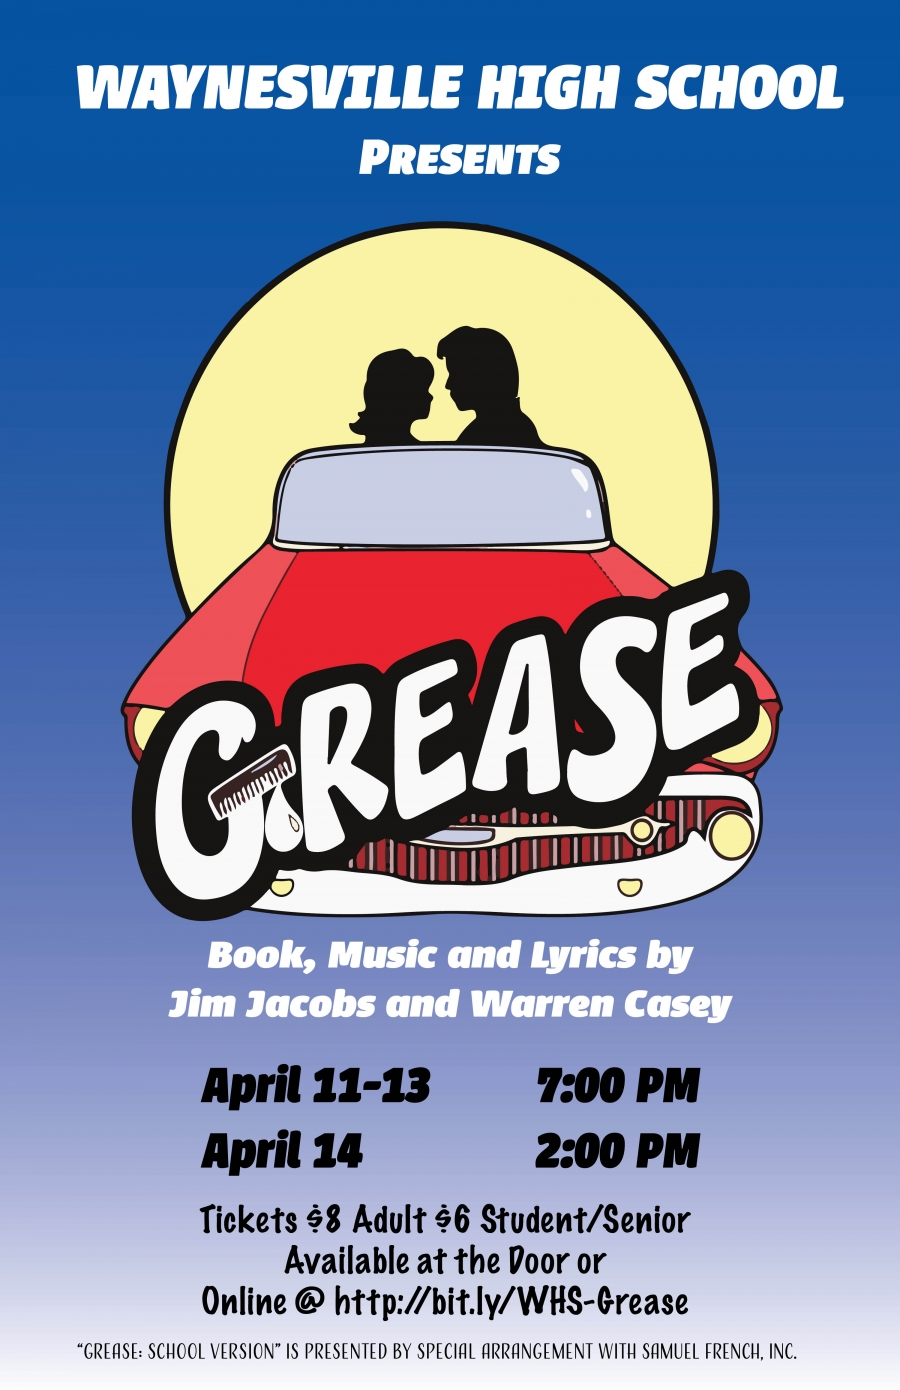 grease poster in blue